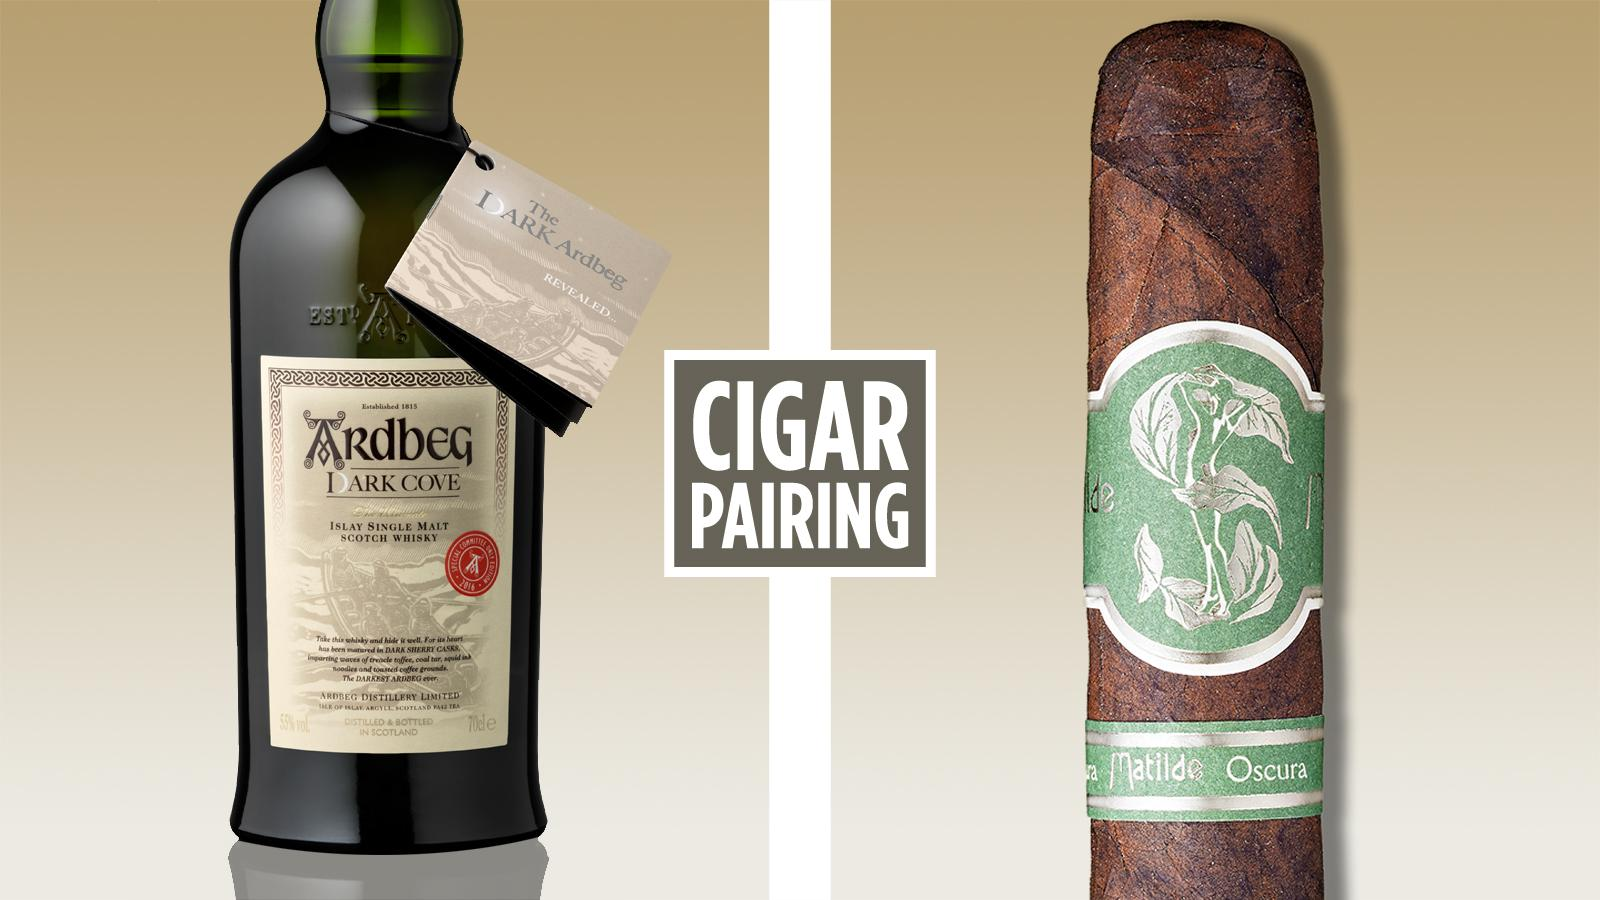 Cigar Pairing: Ardbeg Dark Cove Committee Edition